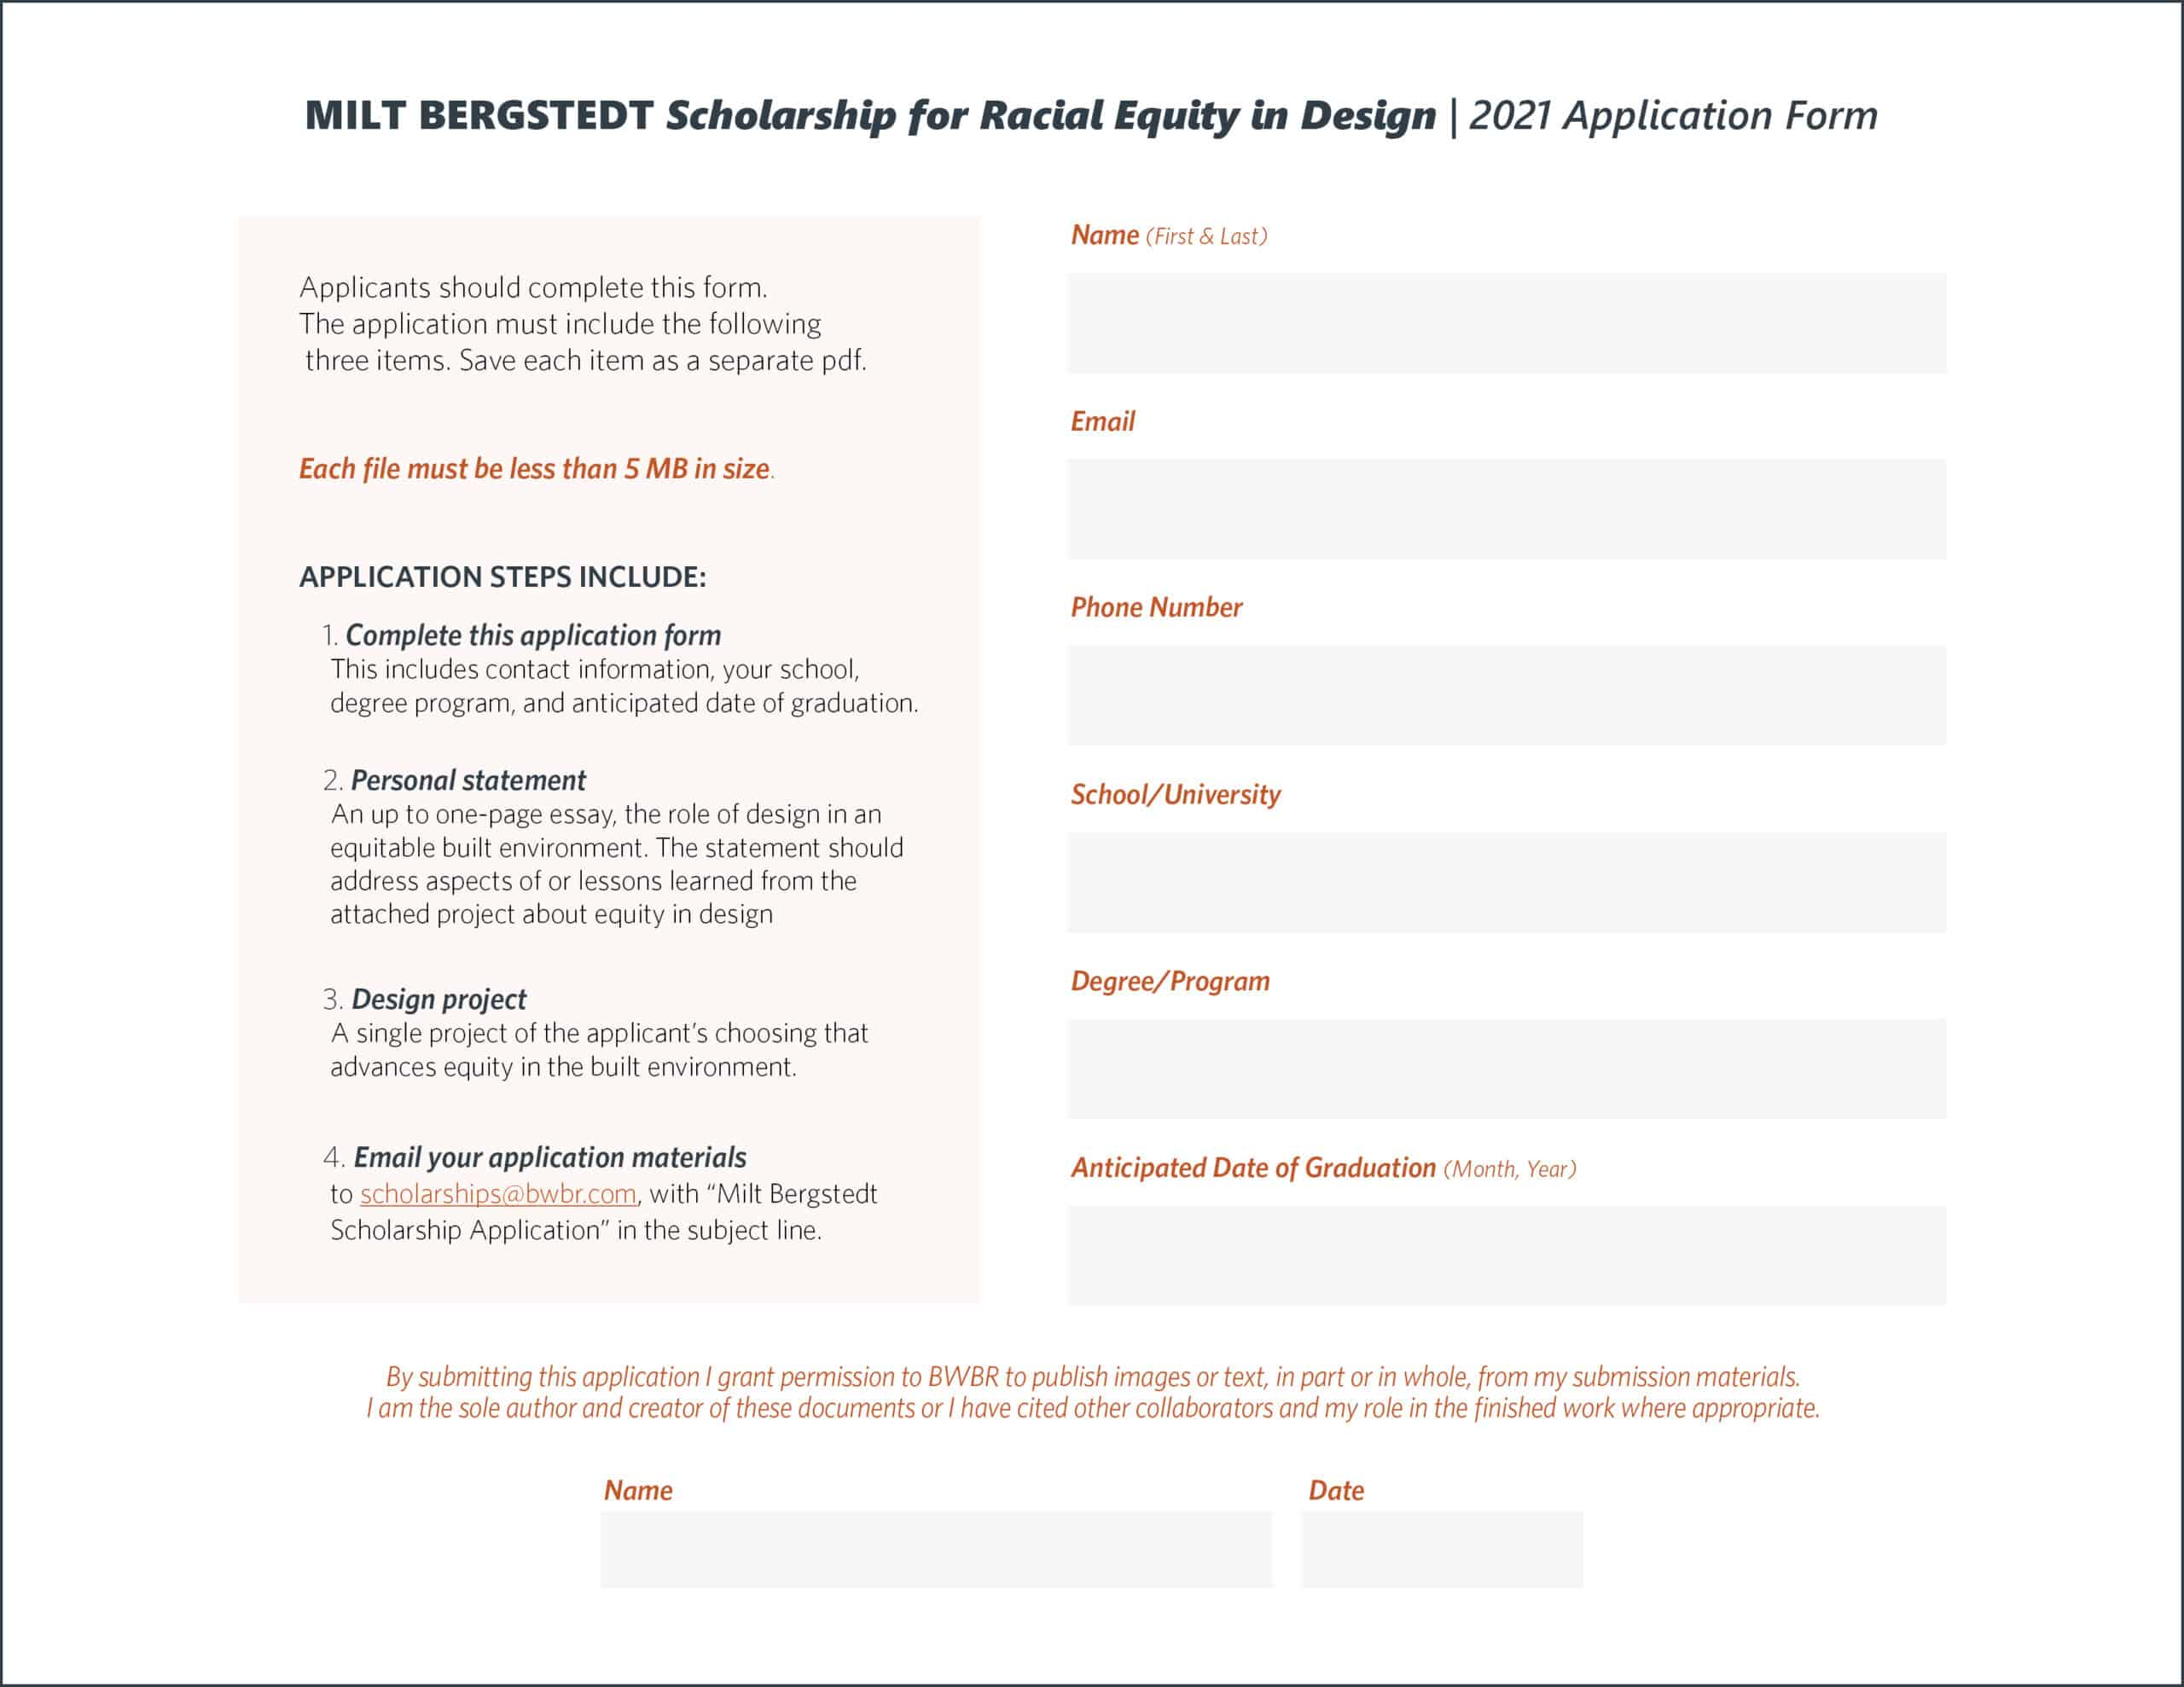 Milt Bergstedt Scholarship for Racial Equity in Design Application Form